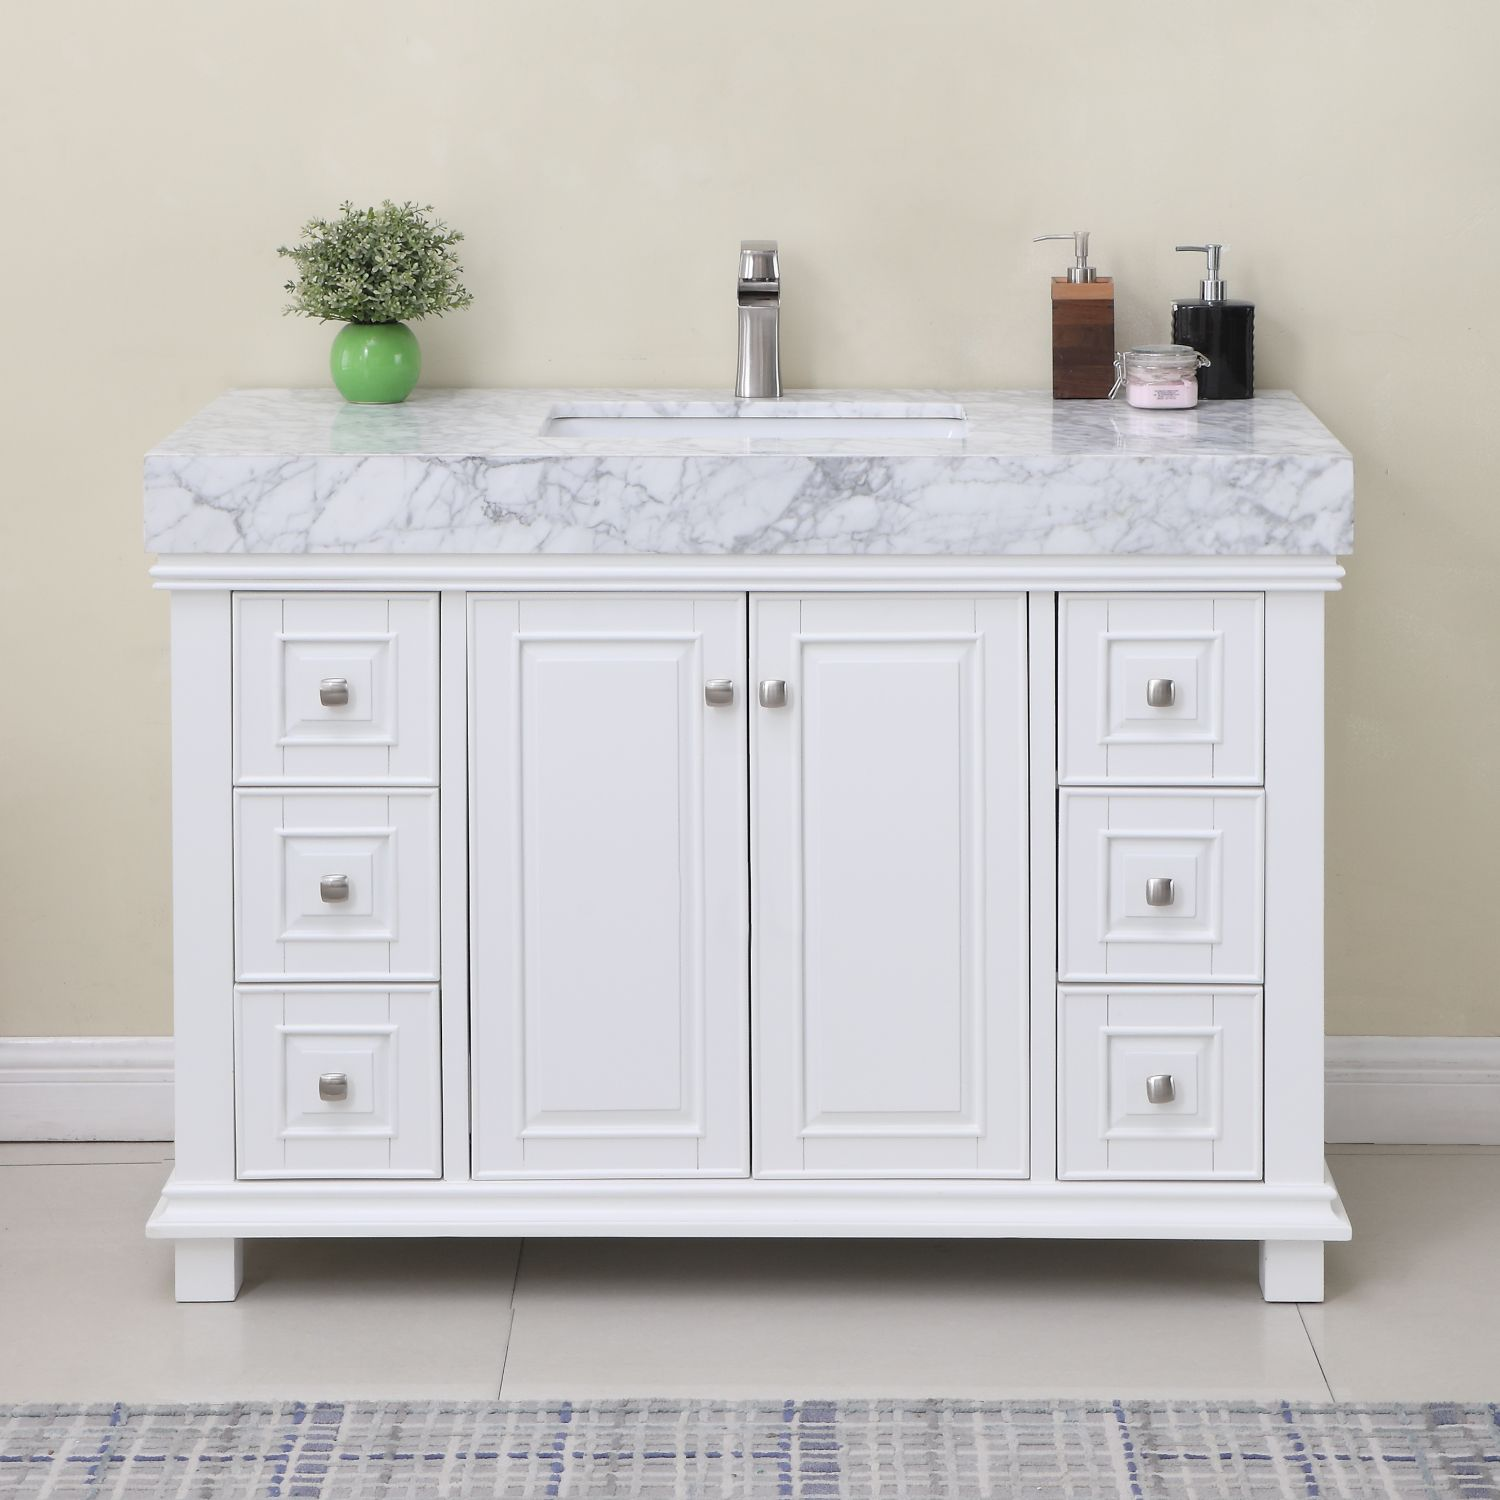 "Issac Edwards Collection 48"" Single Bathroom Vanity Set in White and Carrara White Marble Countertop without Mirror"